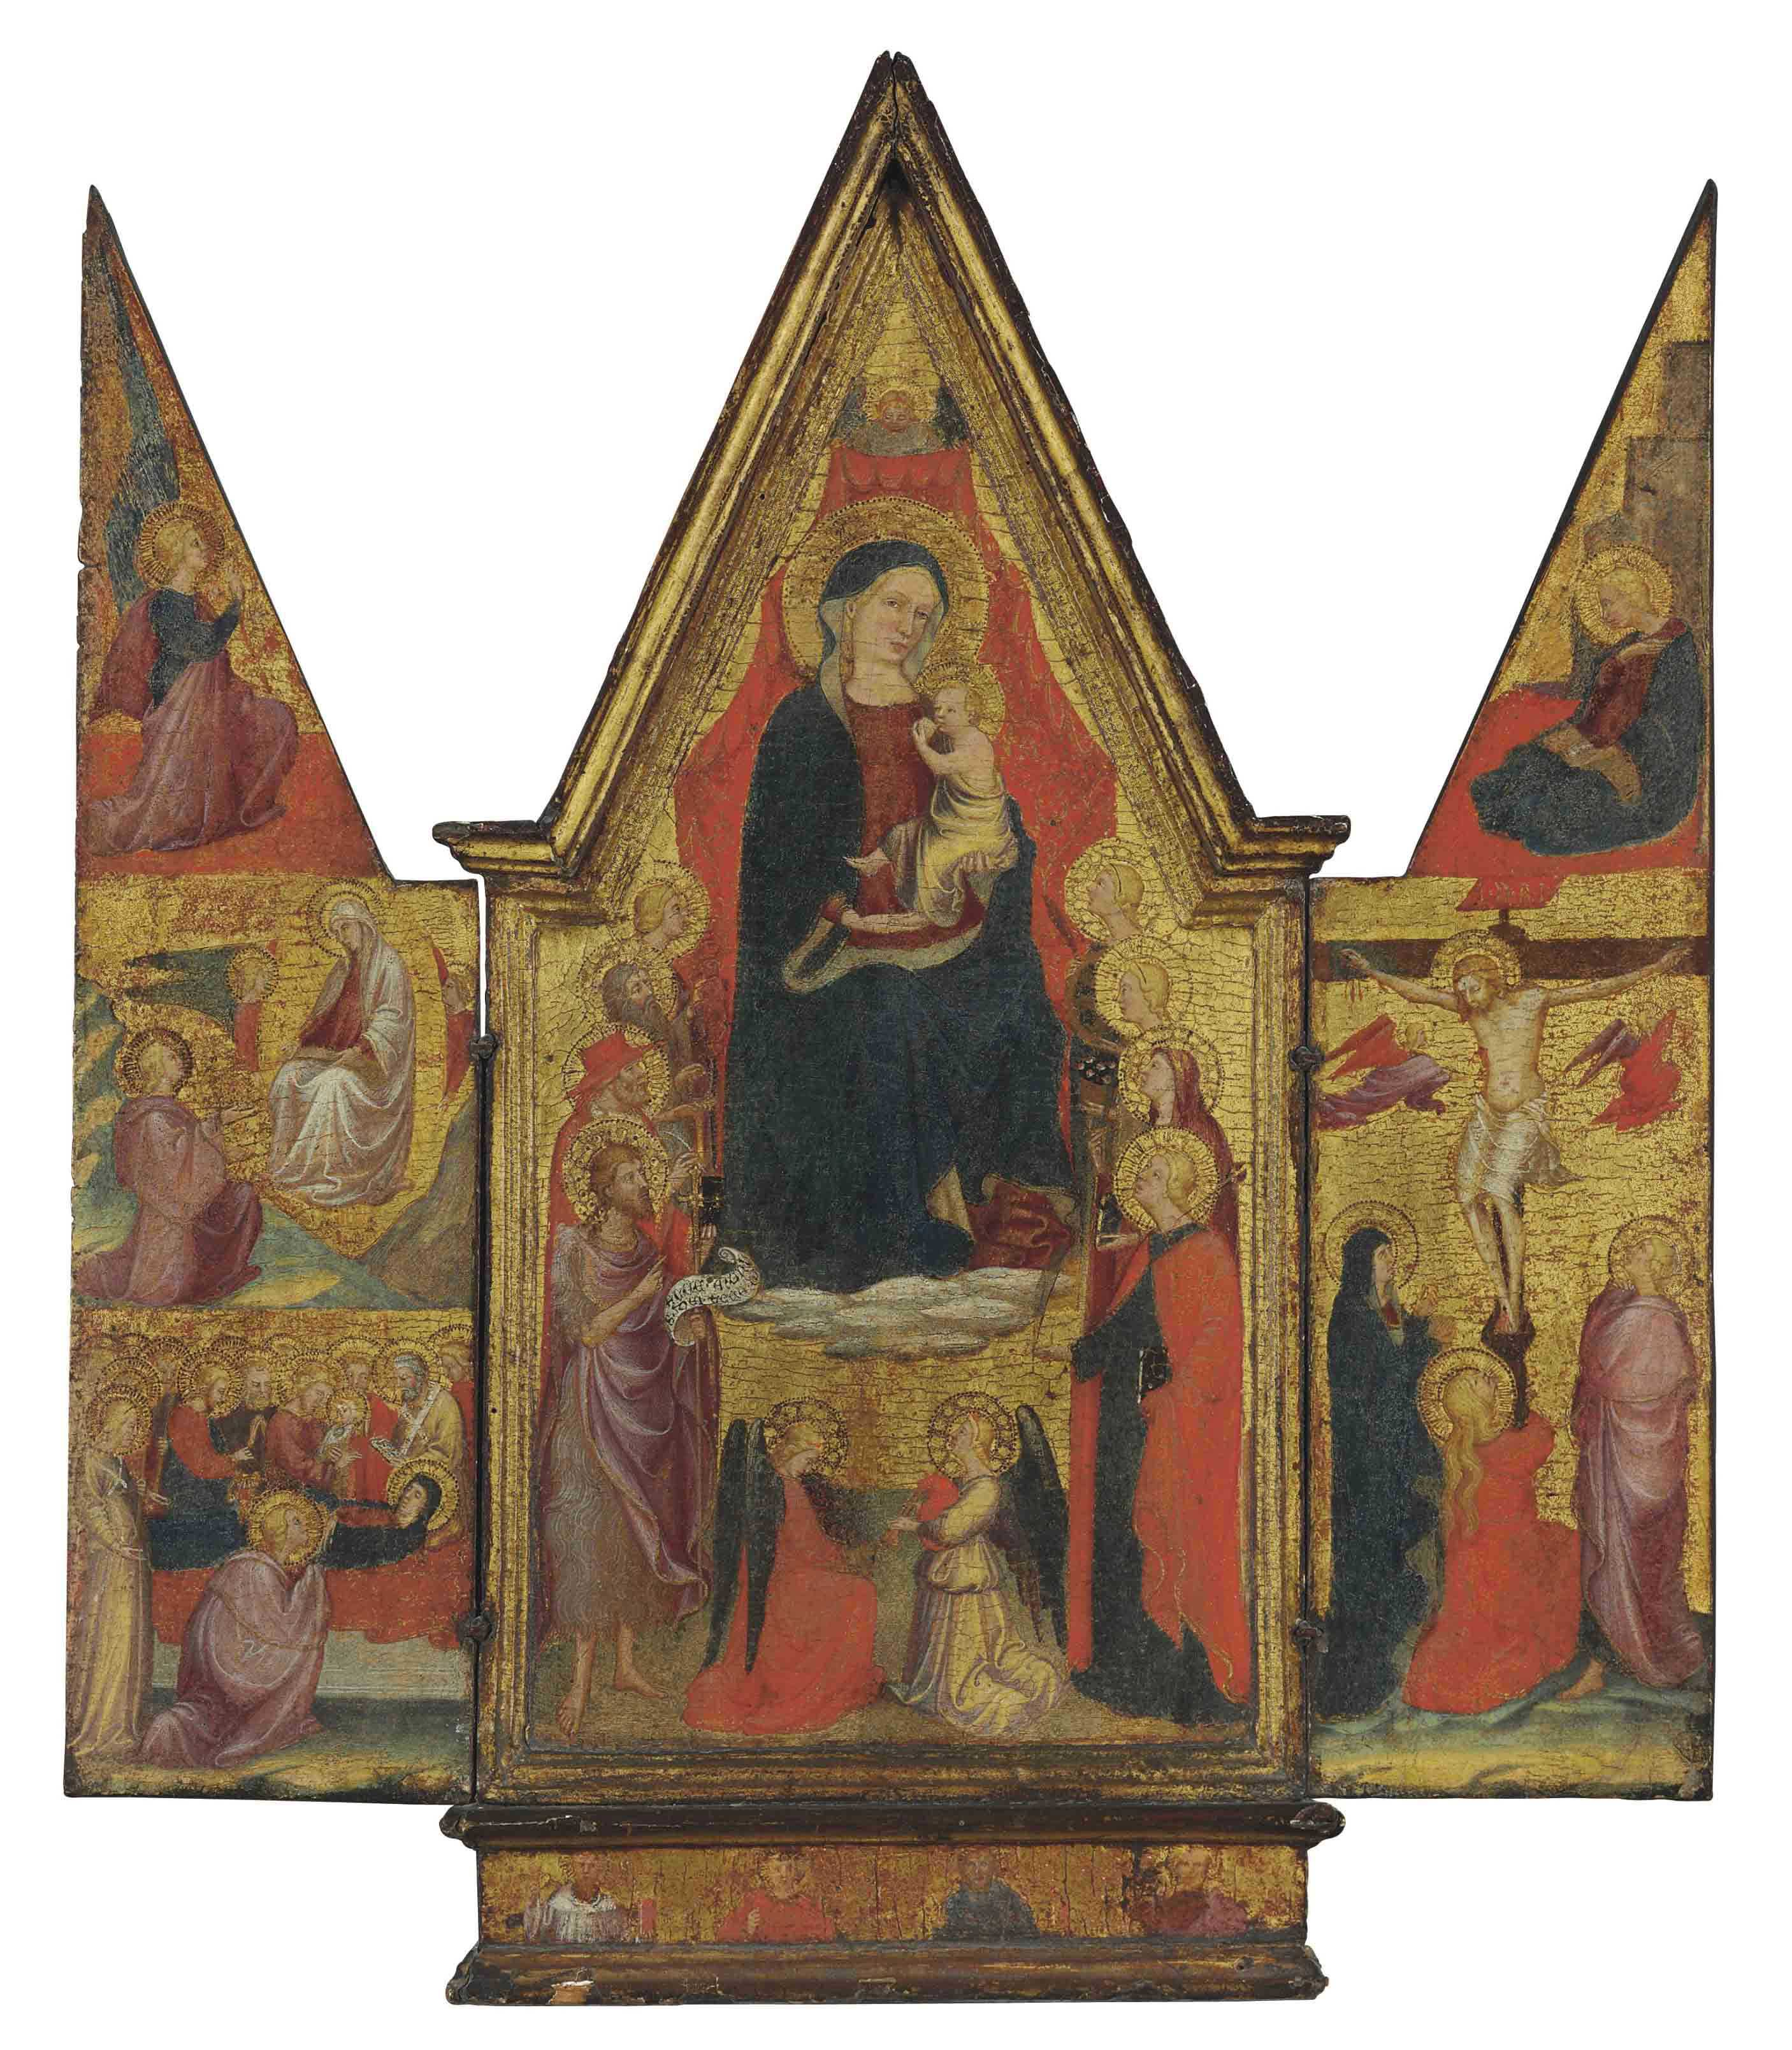 A triptych of The Madonna and Child with Saints and Angels; The Angel of the Annunciation, the Madonna della Cintola, and the Dormition of the Virgin on the left wing; The Virgin Annunciate and the Crucifixion on the right wing; Four male saints on the predella